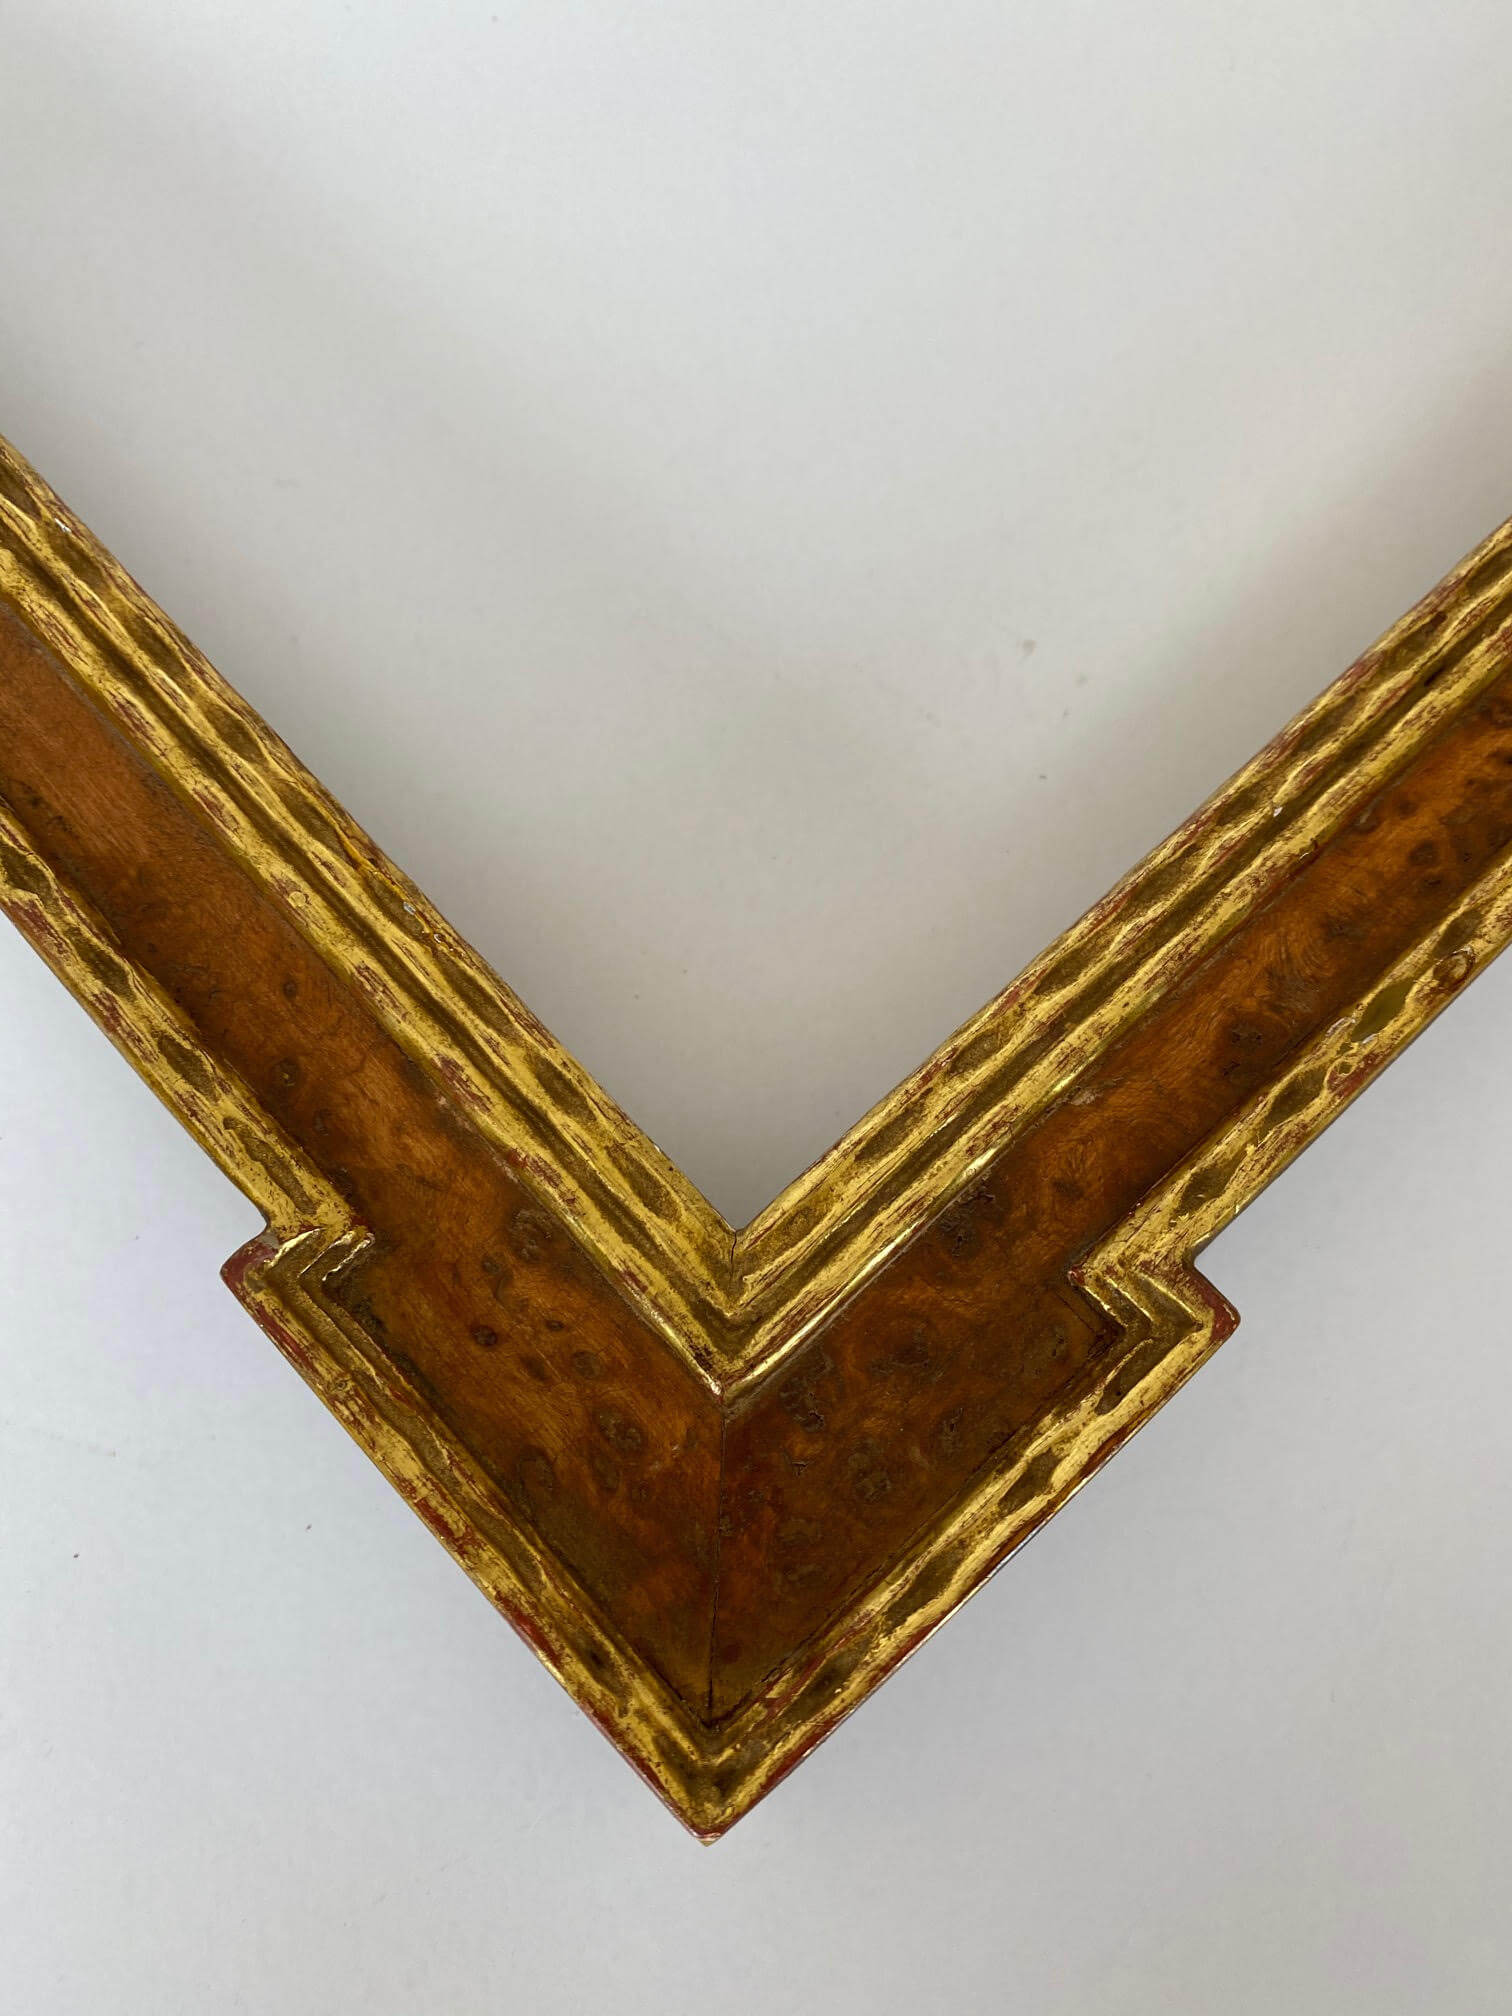 Notched finished corner frame with burled wood veneer and 22 karat gold leaf antique reproduction frame Artifact services artmill group custom picture frames